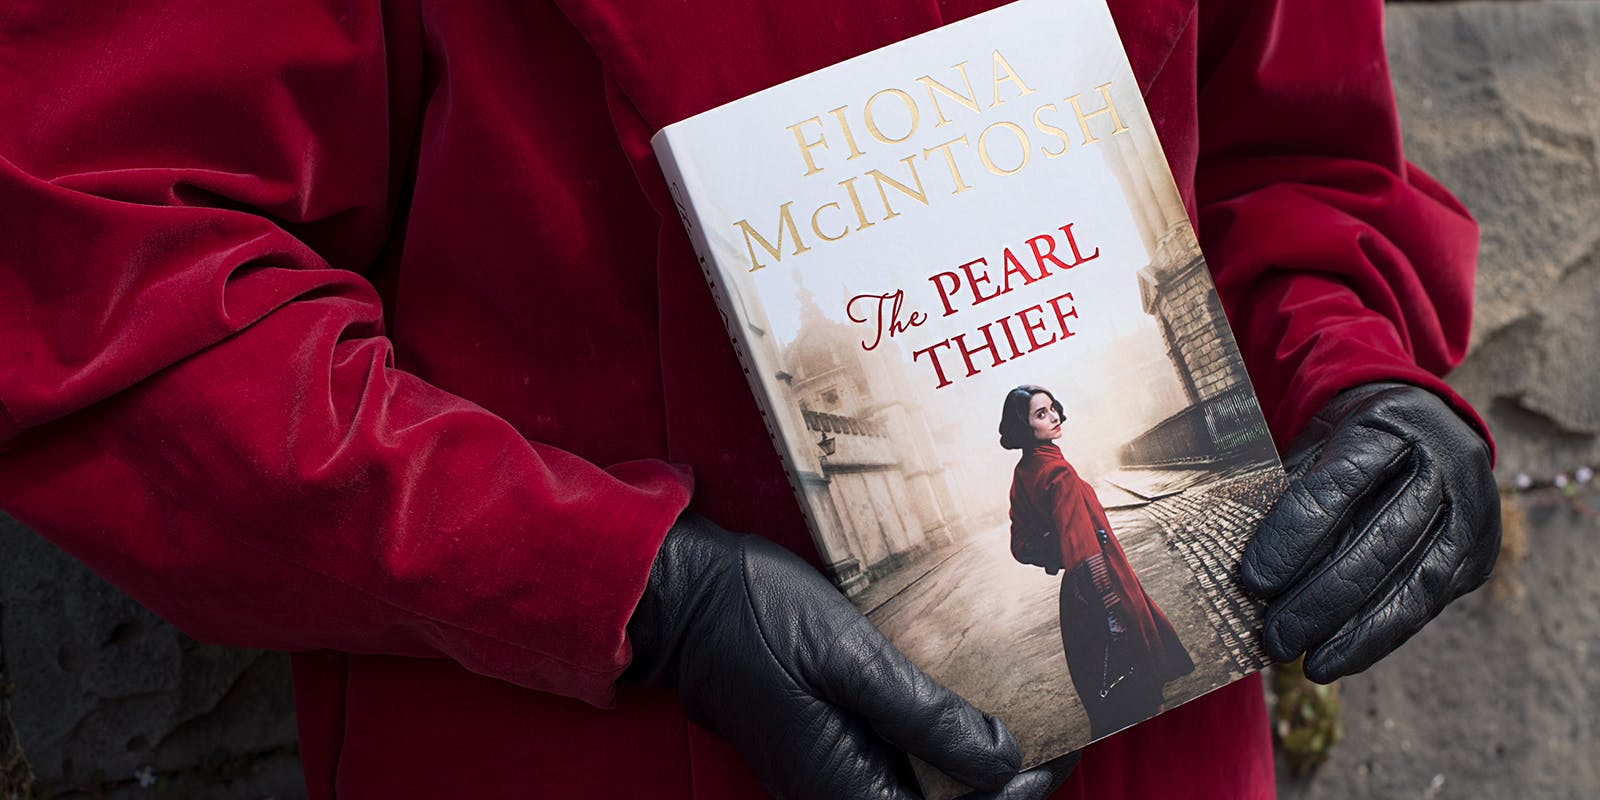 Researching The Pearl Thief